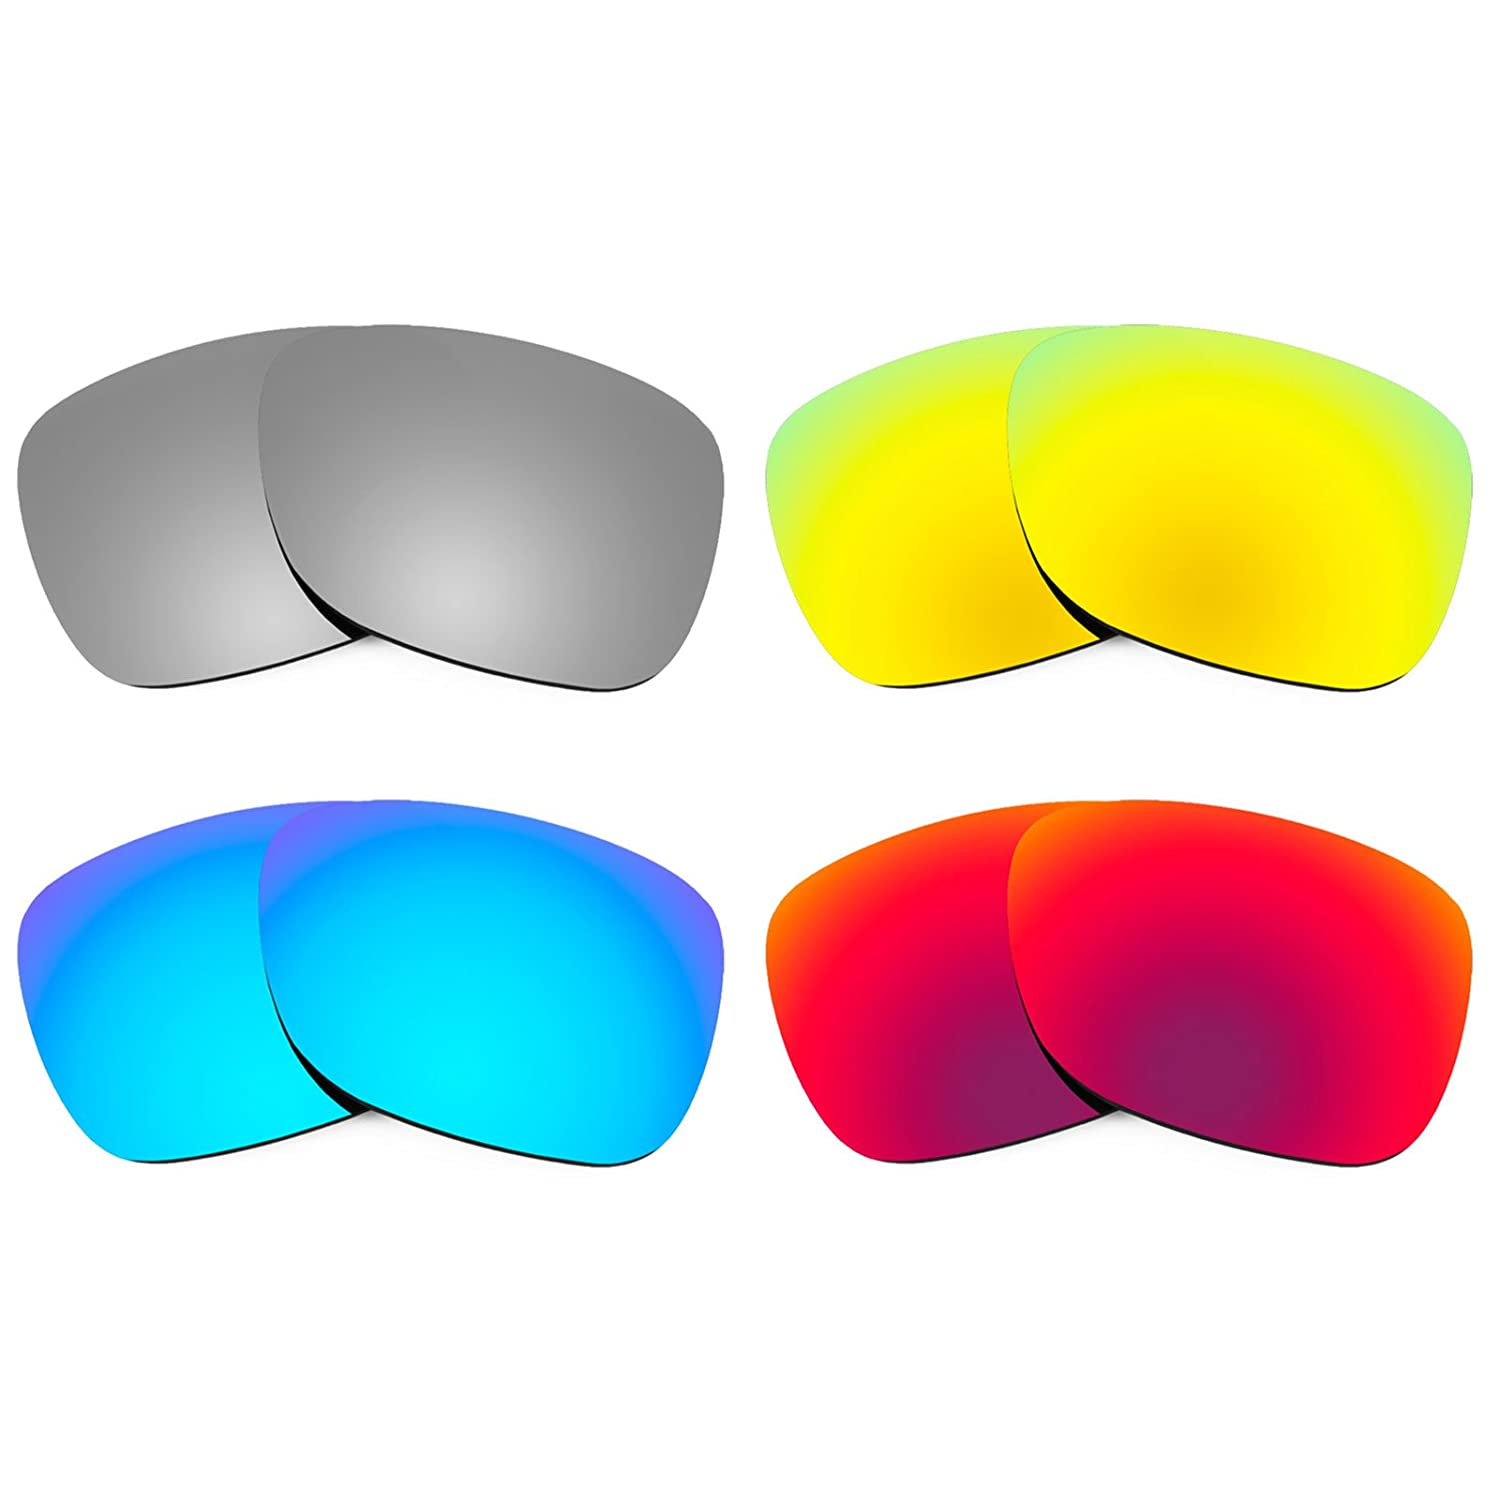 6b6d27c749 Revant Replacement Lenses for Ray Ban Justin 54mm RB4165 4 Pair Combo Pack  K020  Amazon.ca  Sports   Outdoors